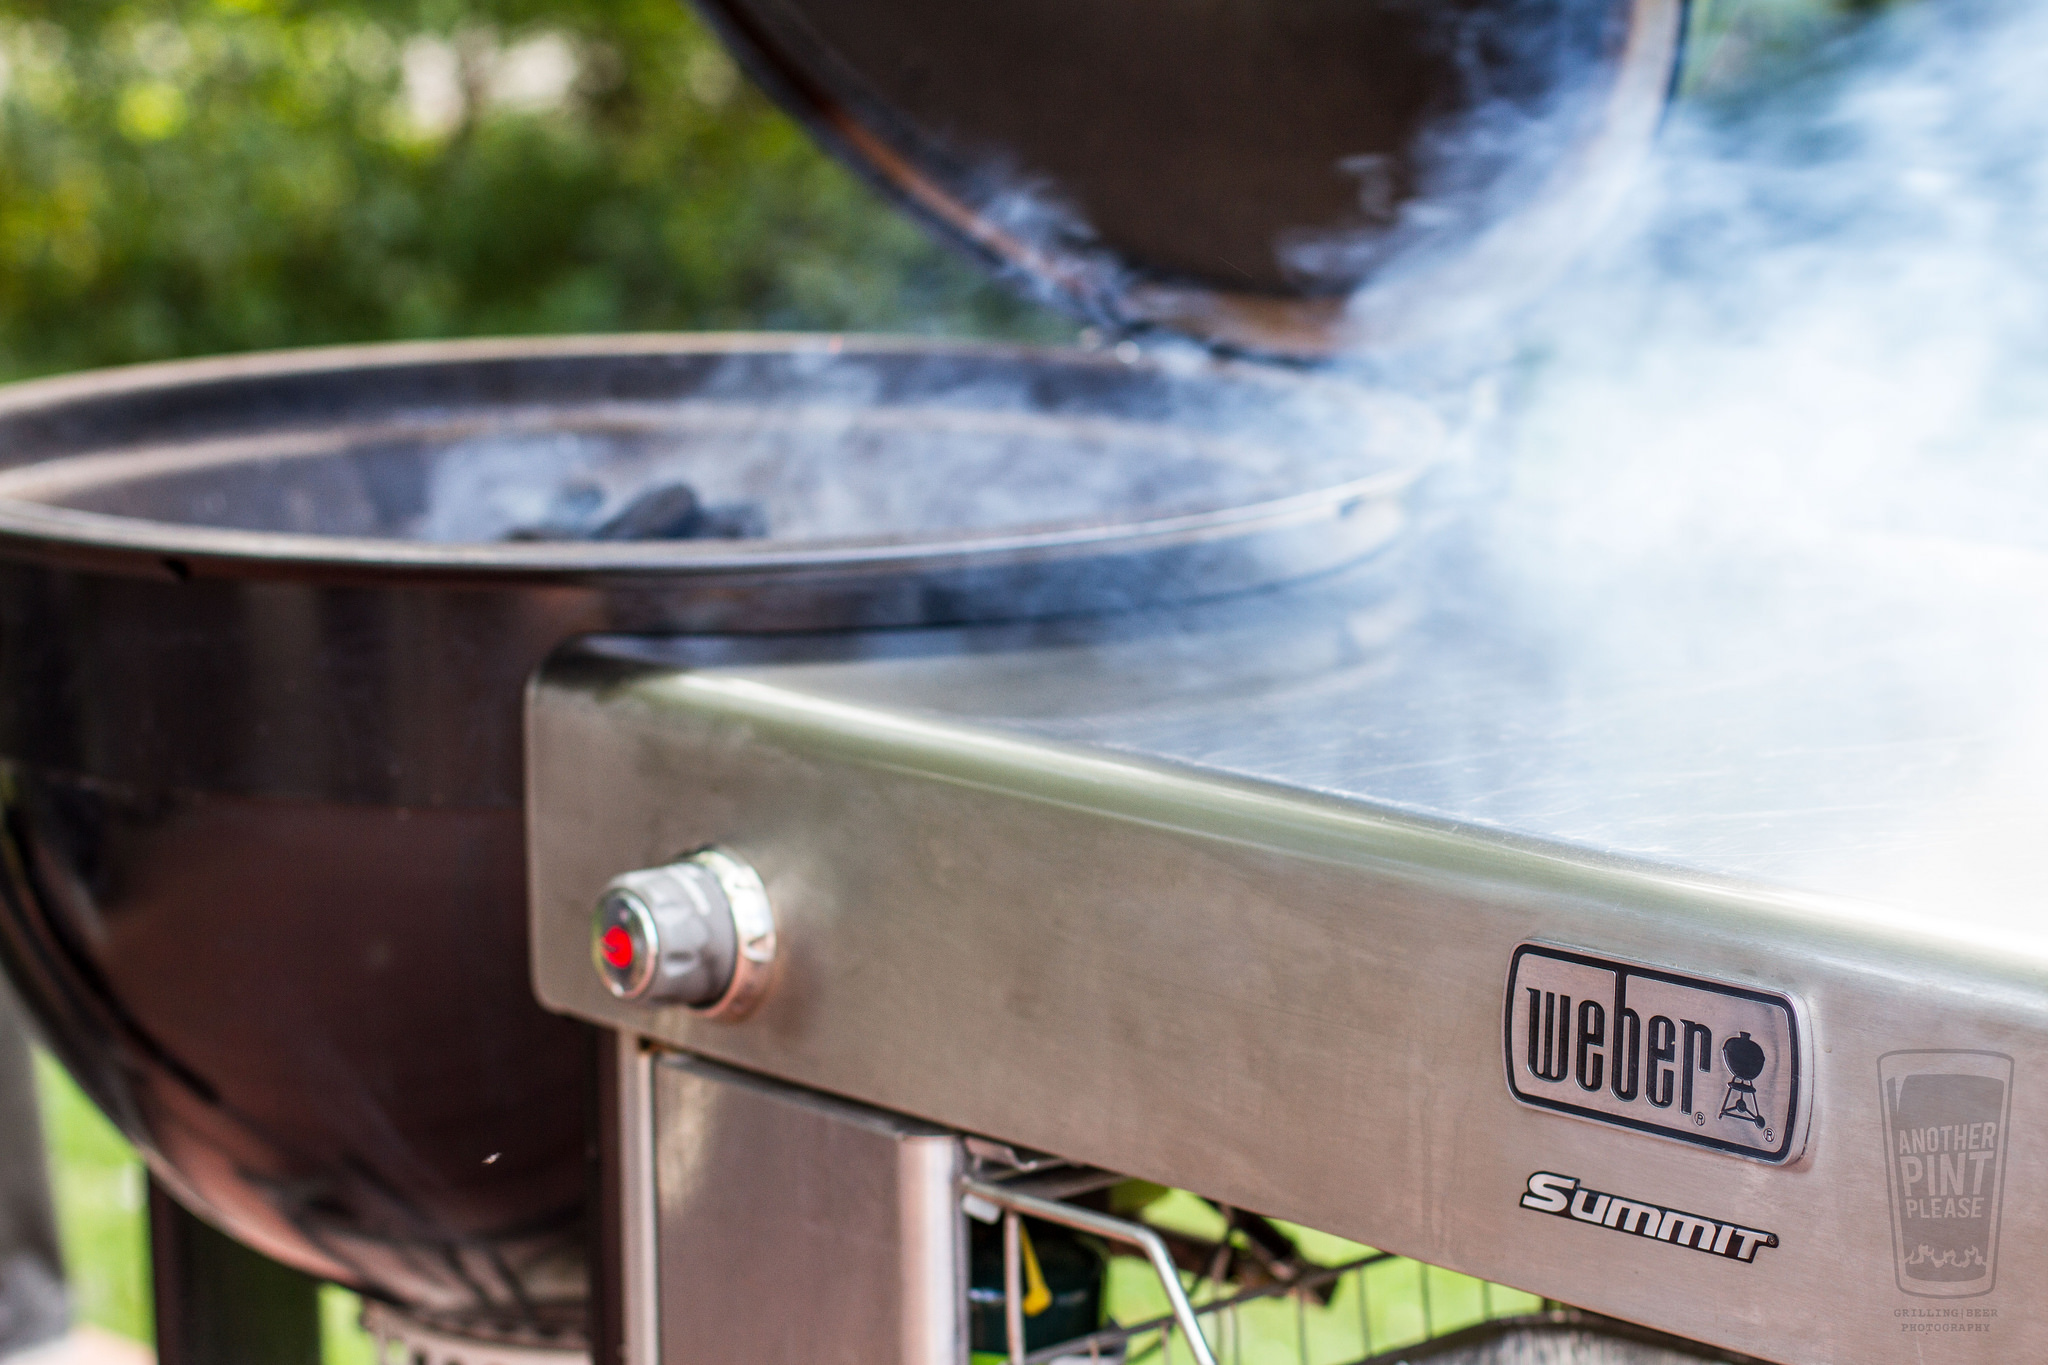 lit charcoal on the summit charcoal grill.jpg